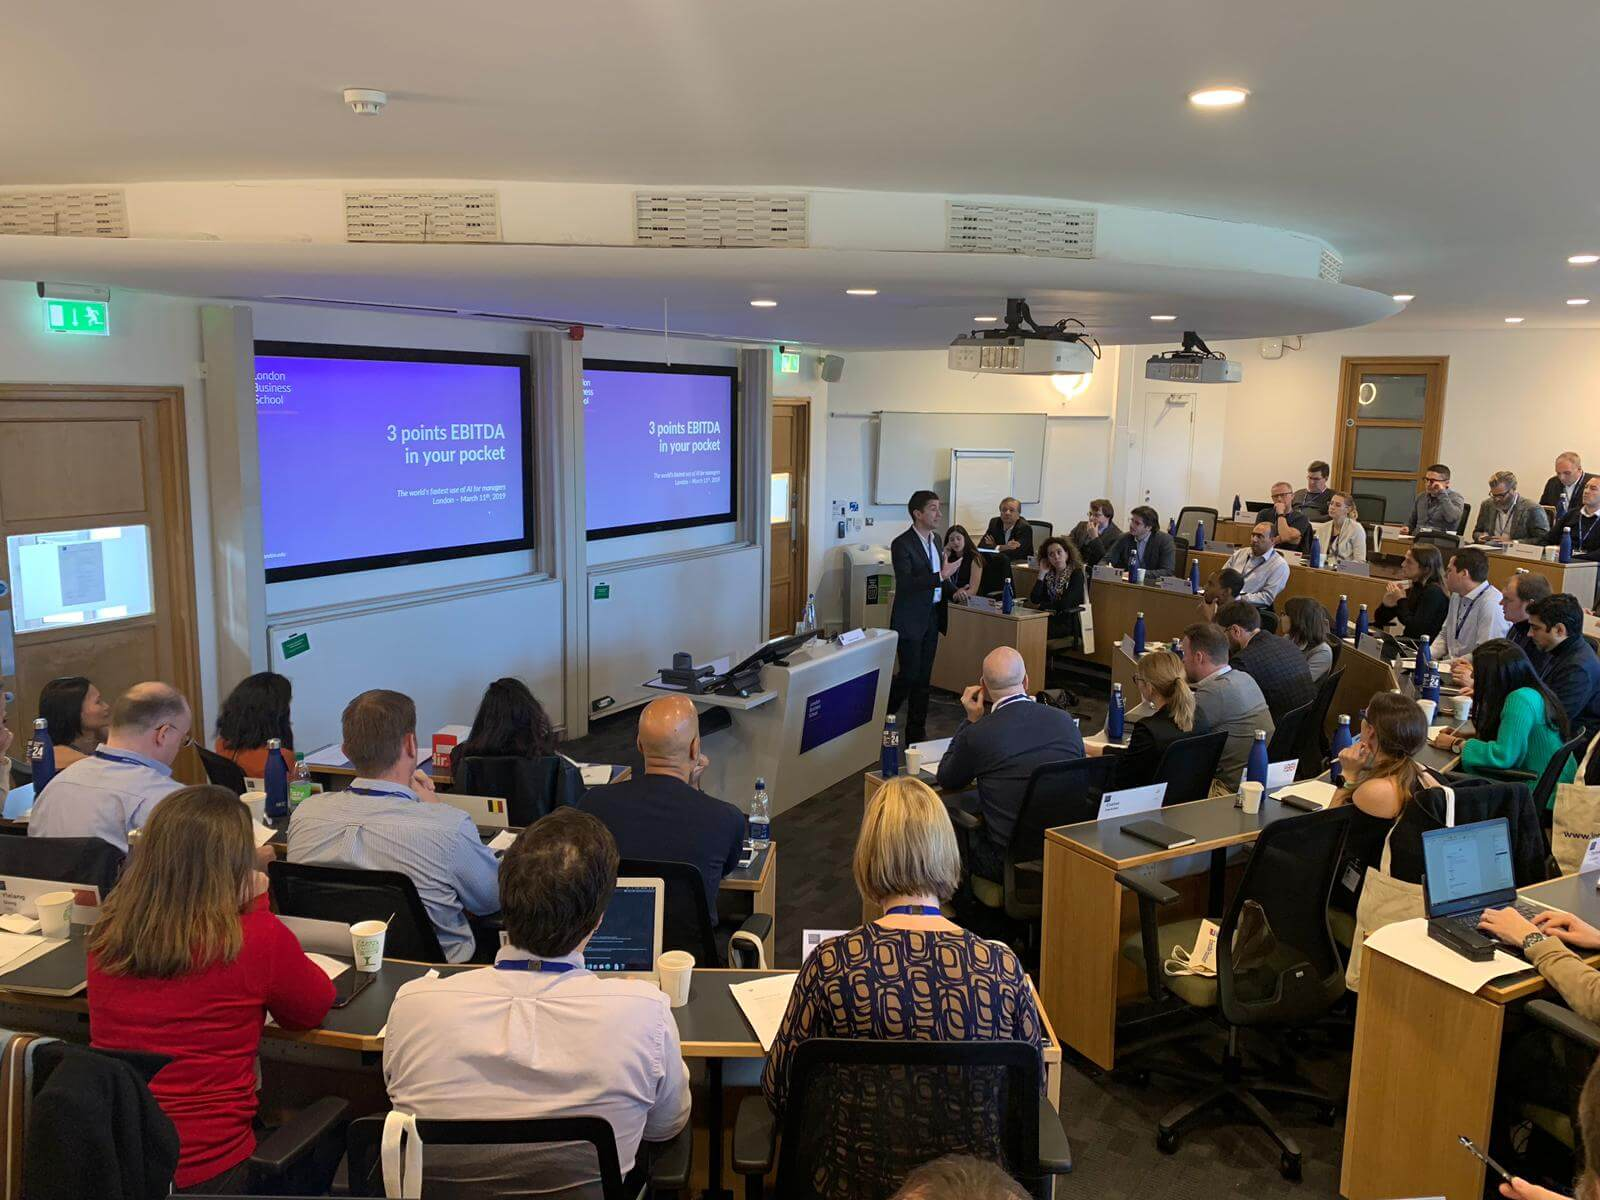 Evo and London Business School host 'Big Data Masterclass'